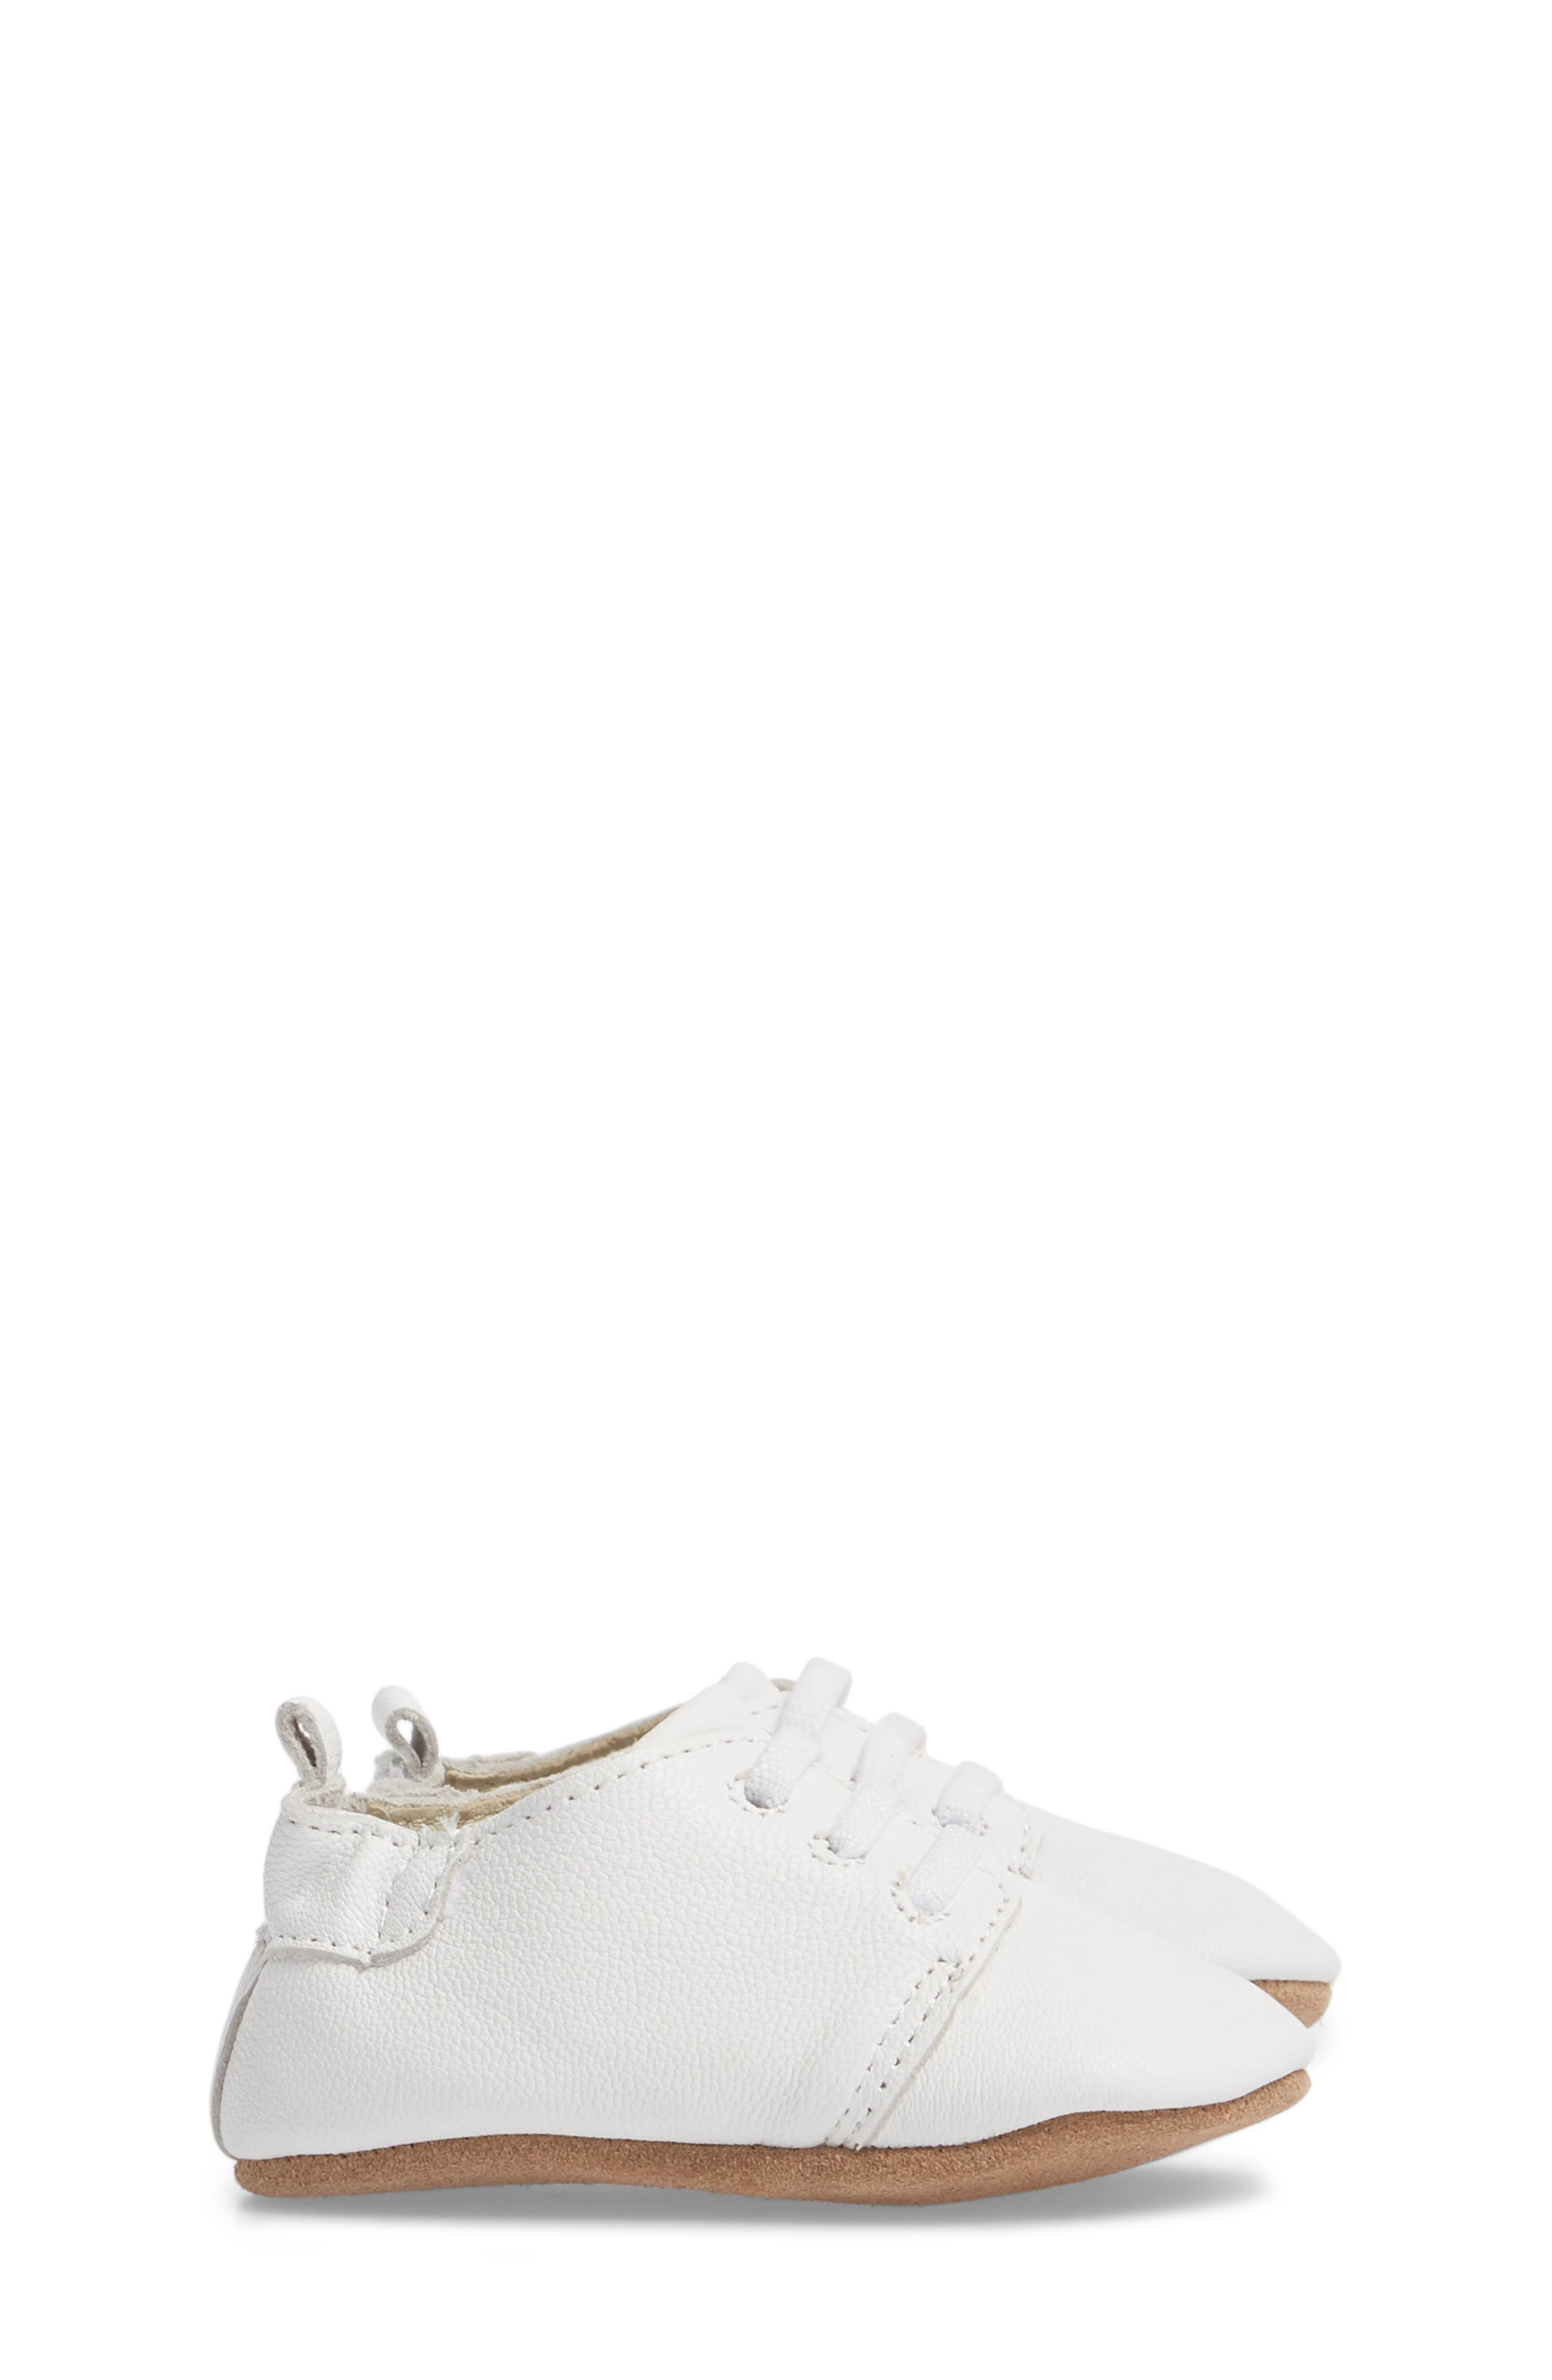 Owen Oxford Crib Shoe,                             Alternate thumbnail 4, color,                             White